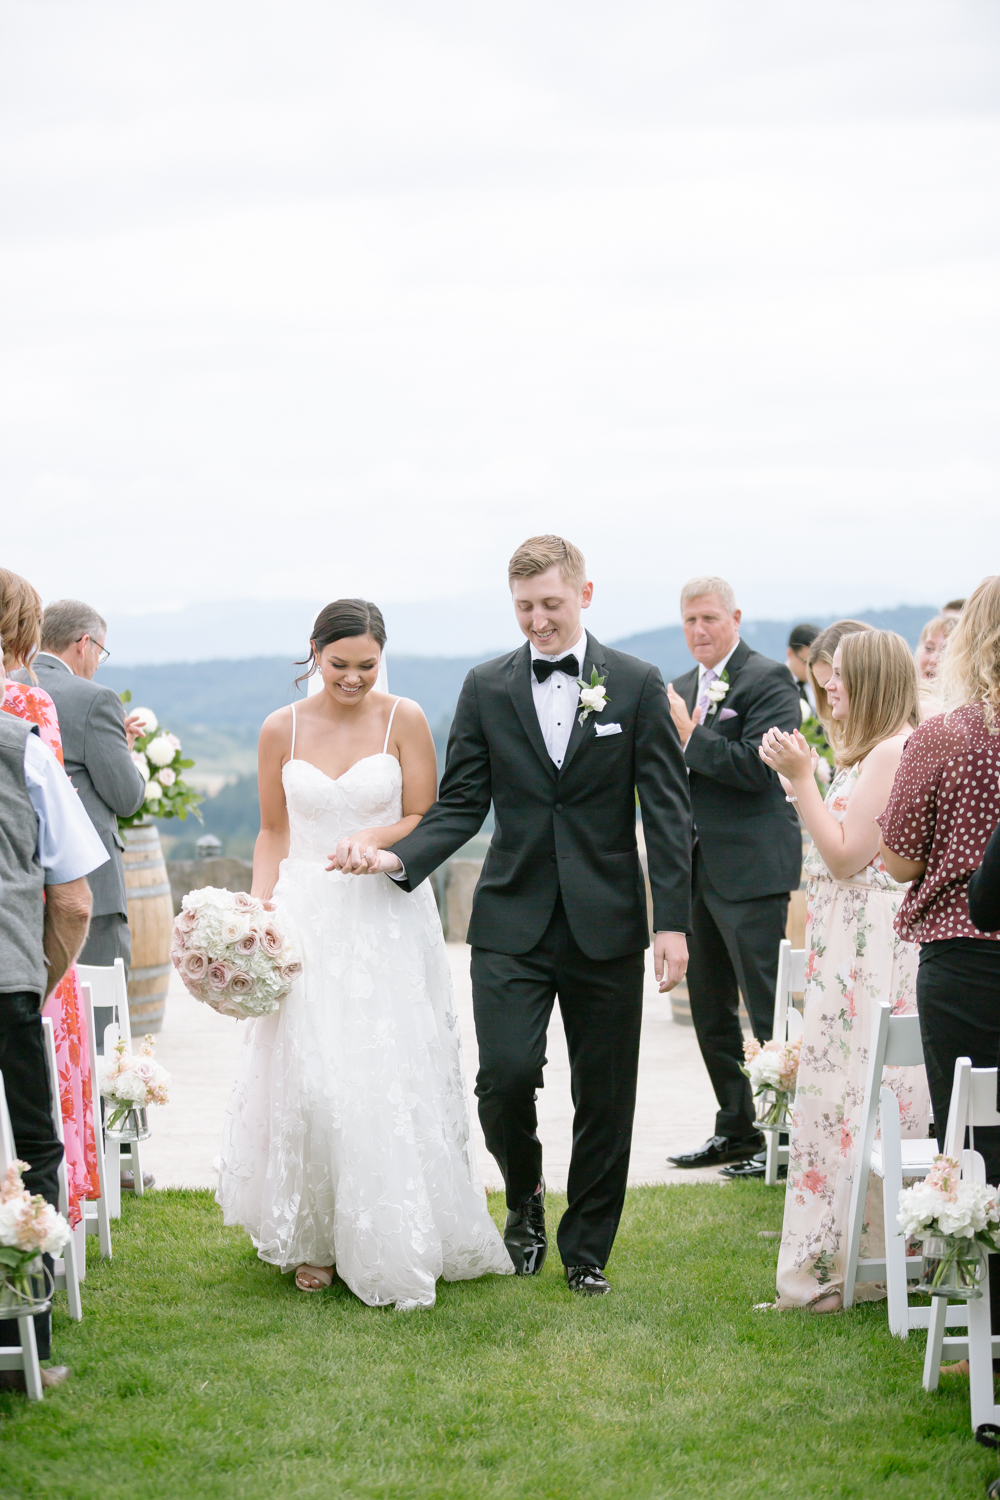 Youngberg Hill Vineyard Wedding in Wine Country Oregon - Corrie Mick Photography-331.jpg